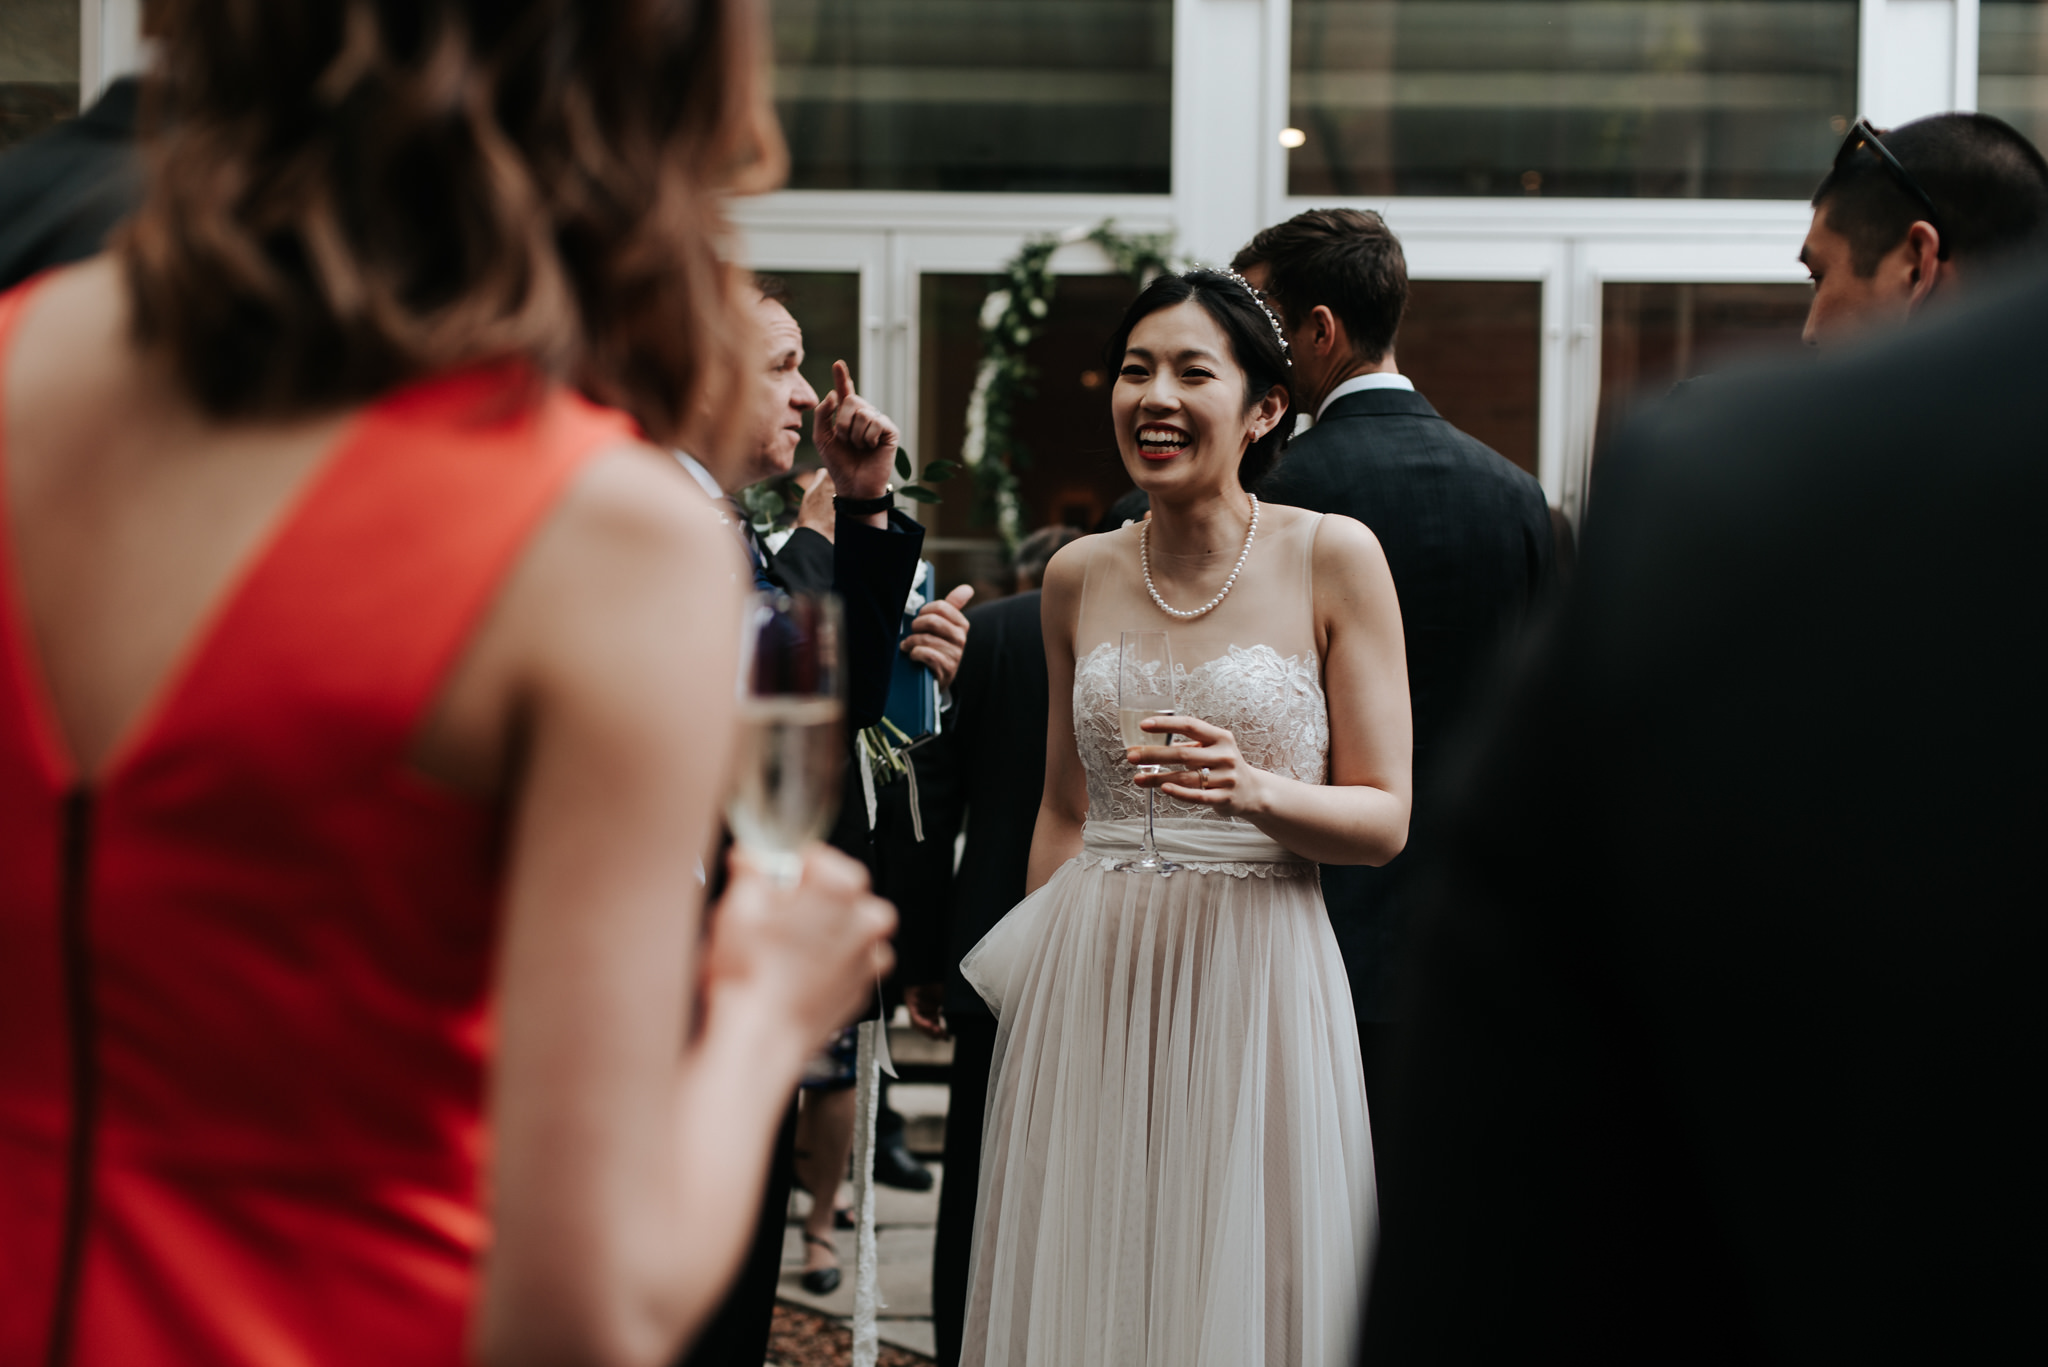 bride with champagne glass greeting guests at wedding